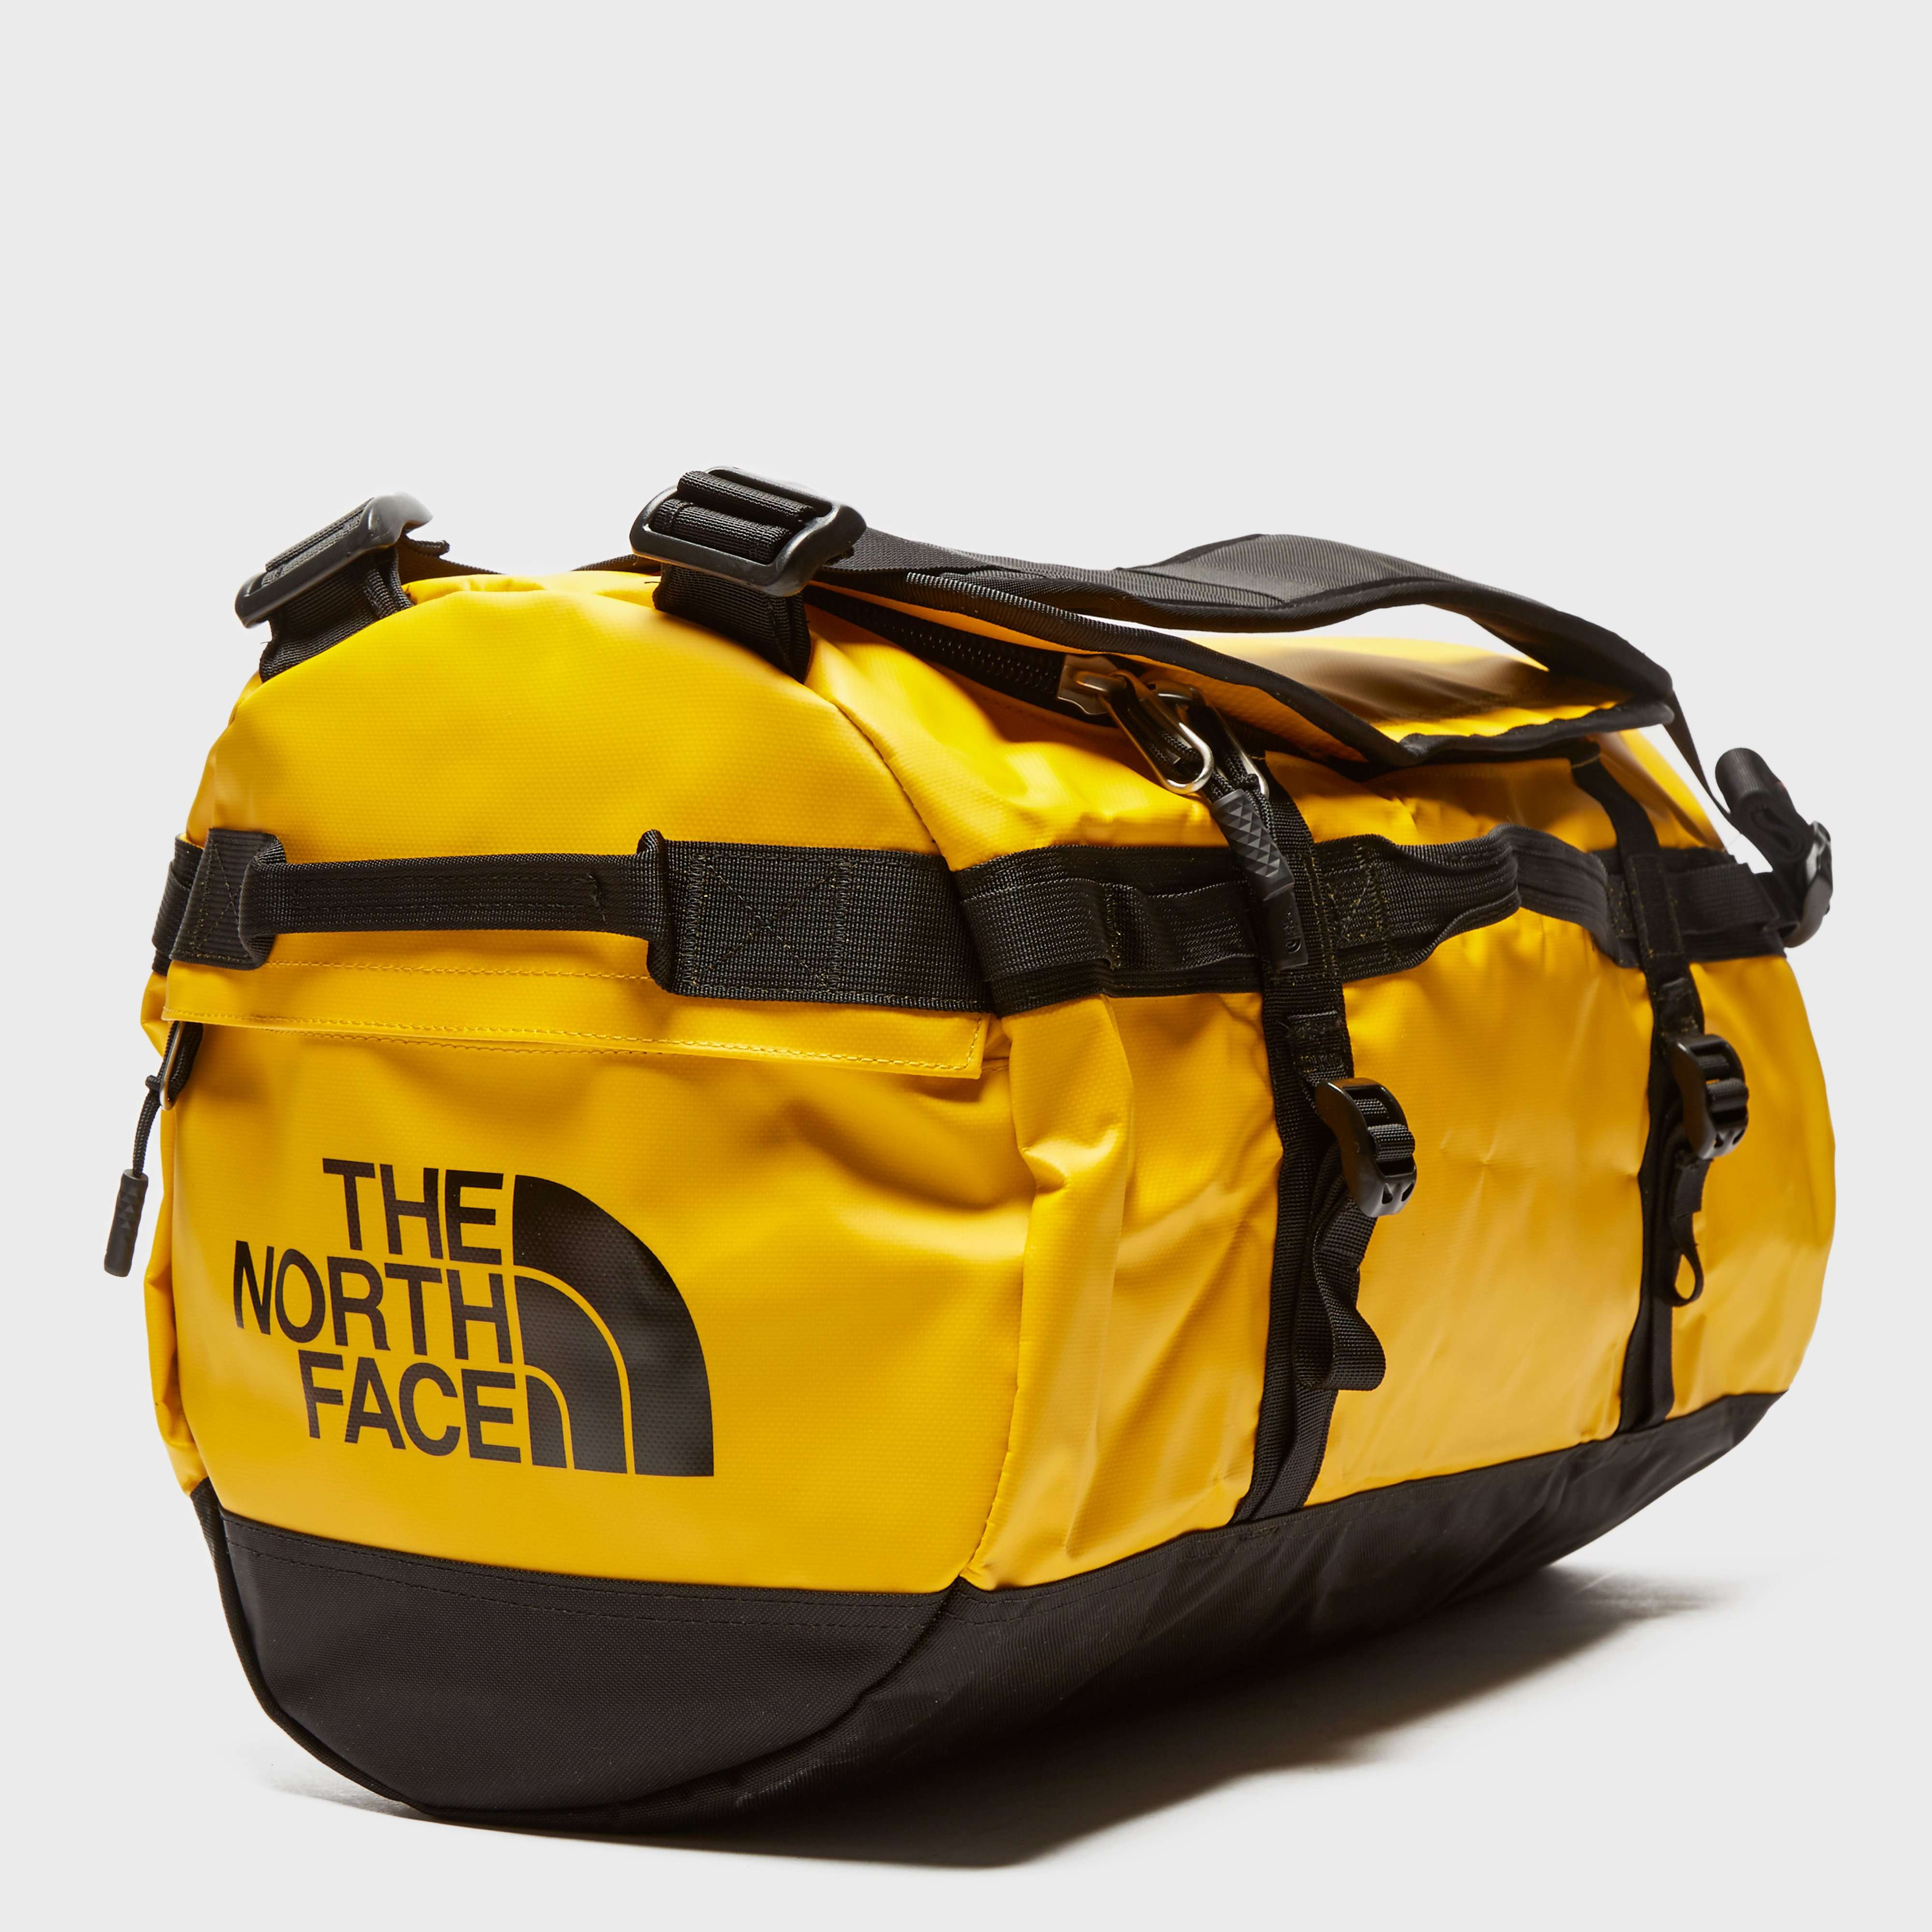 THE NORTH FACE Basecamp Duffel Bag (Small)